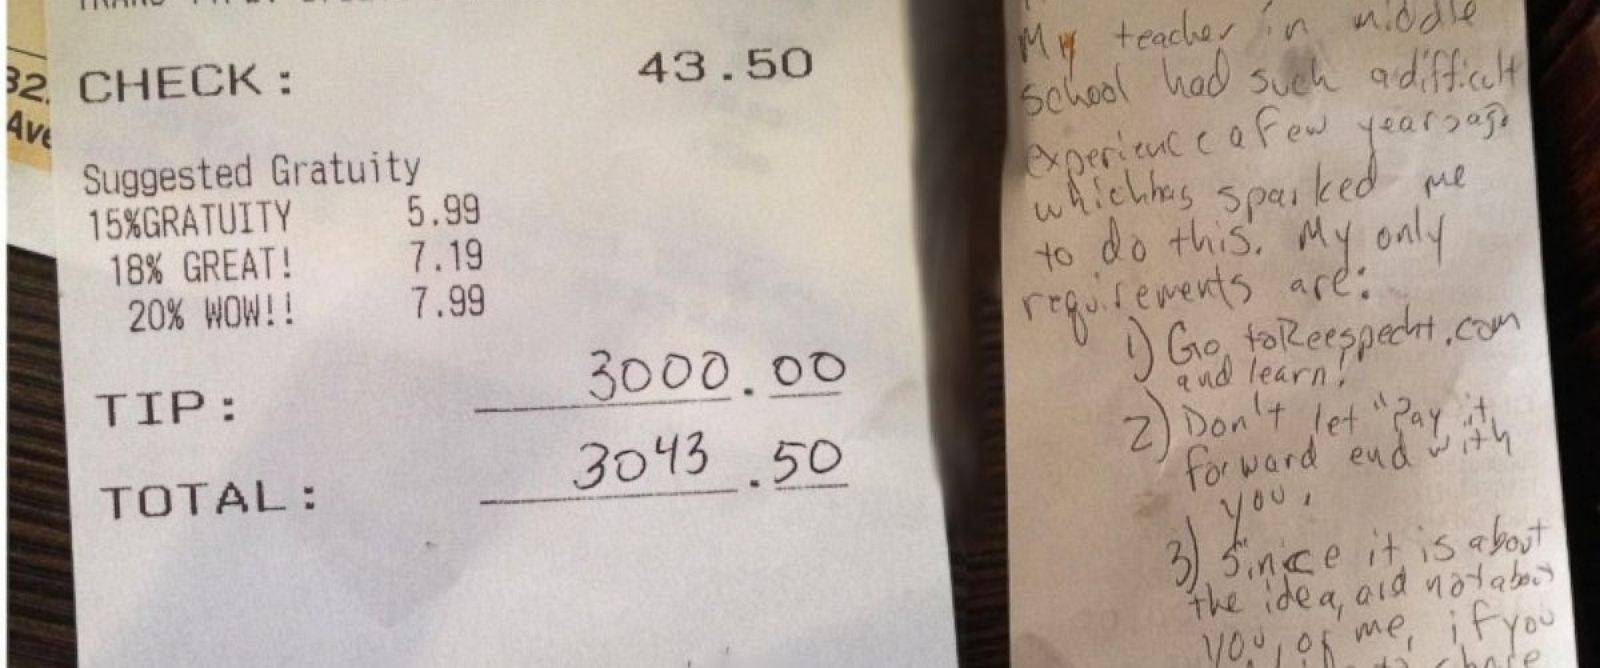 PHOTO: As a part of his middle school teachers pay it forward movement, a man left his waitress a $3,000 tip, asking her to pay it forward.